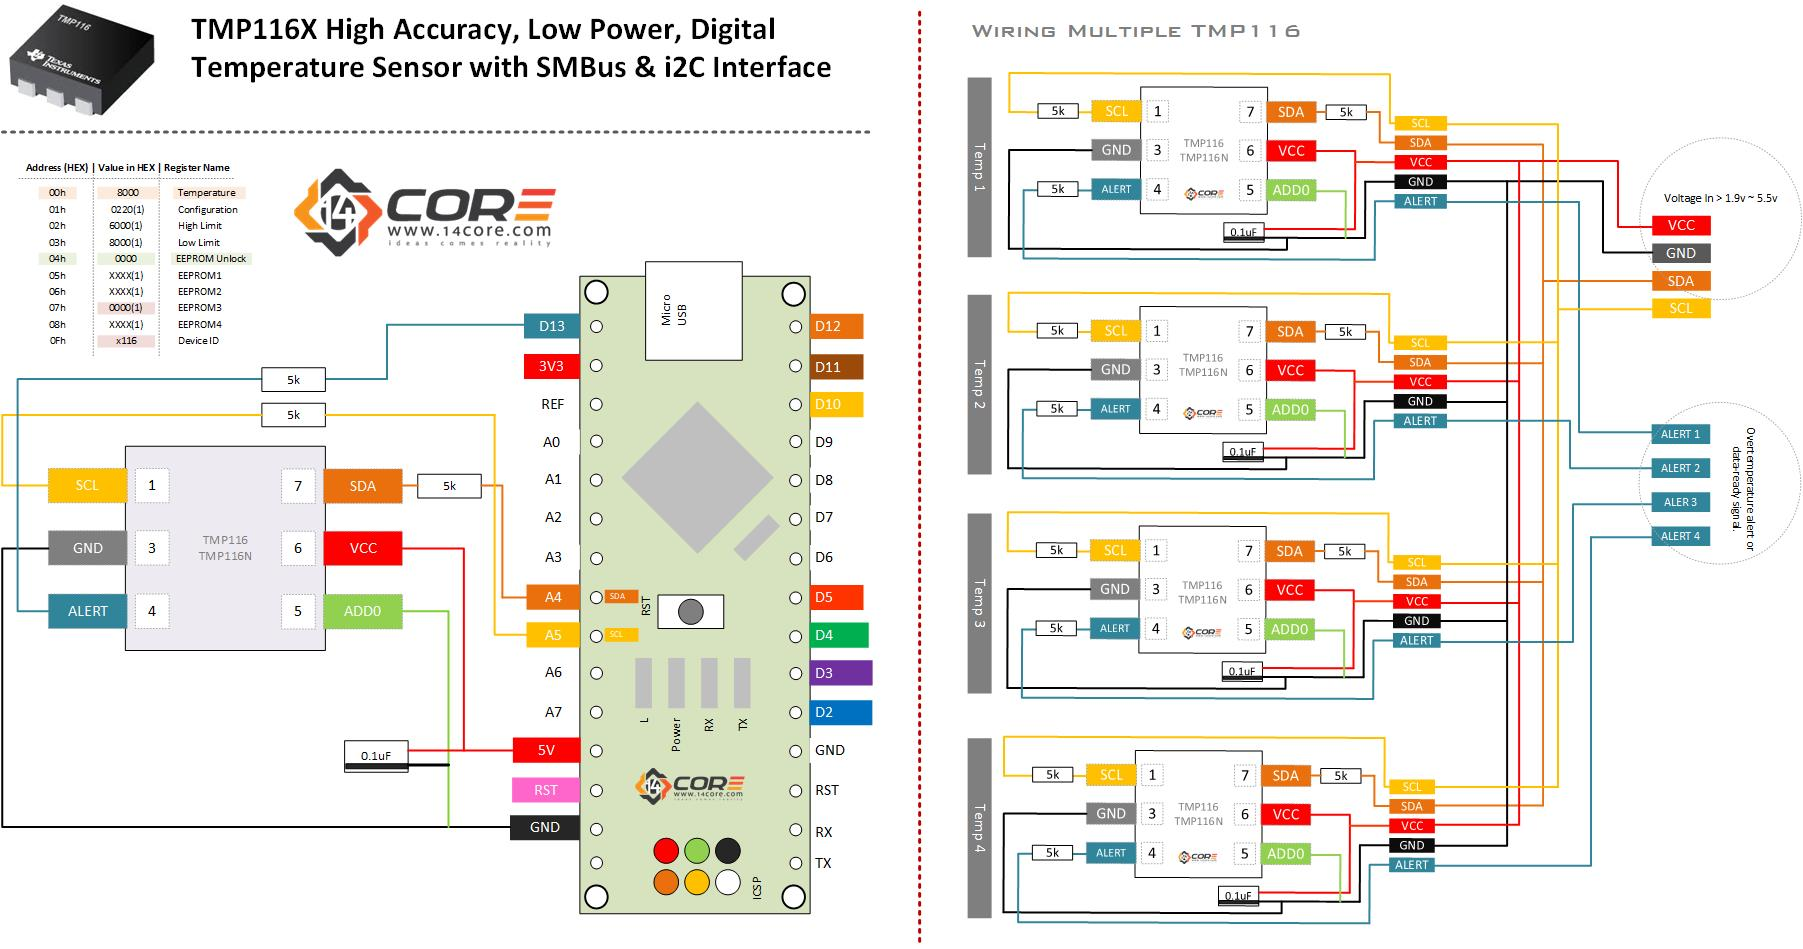 hight resolution of tmp wiring harness alpine stereo harness smbus i2c tmp116 tmp116n temperature sensor 14core com